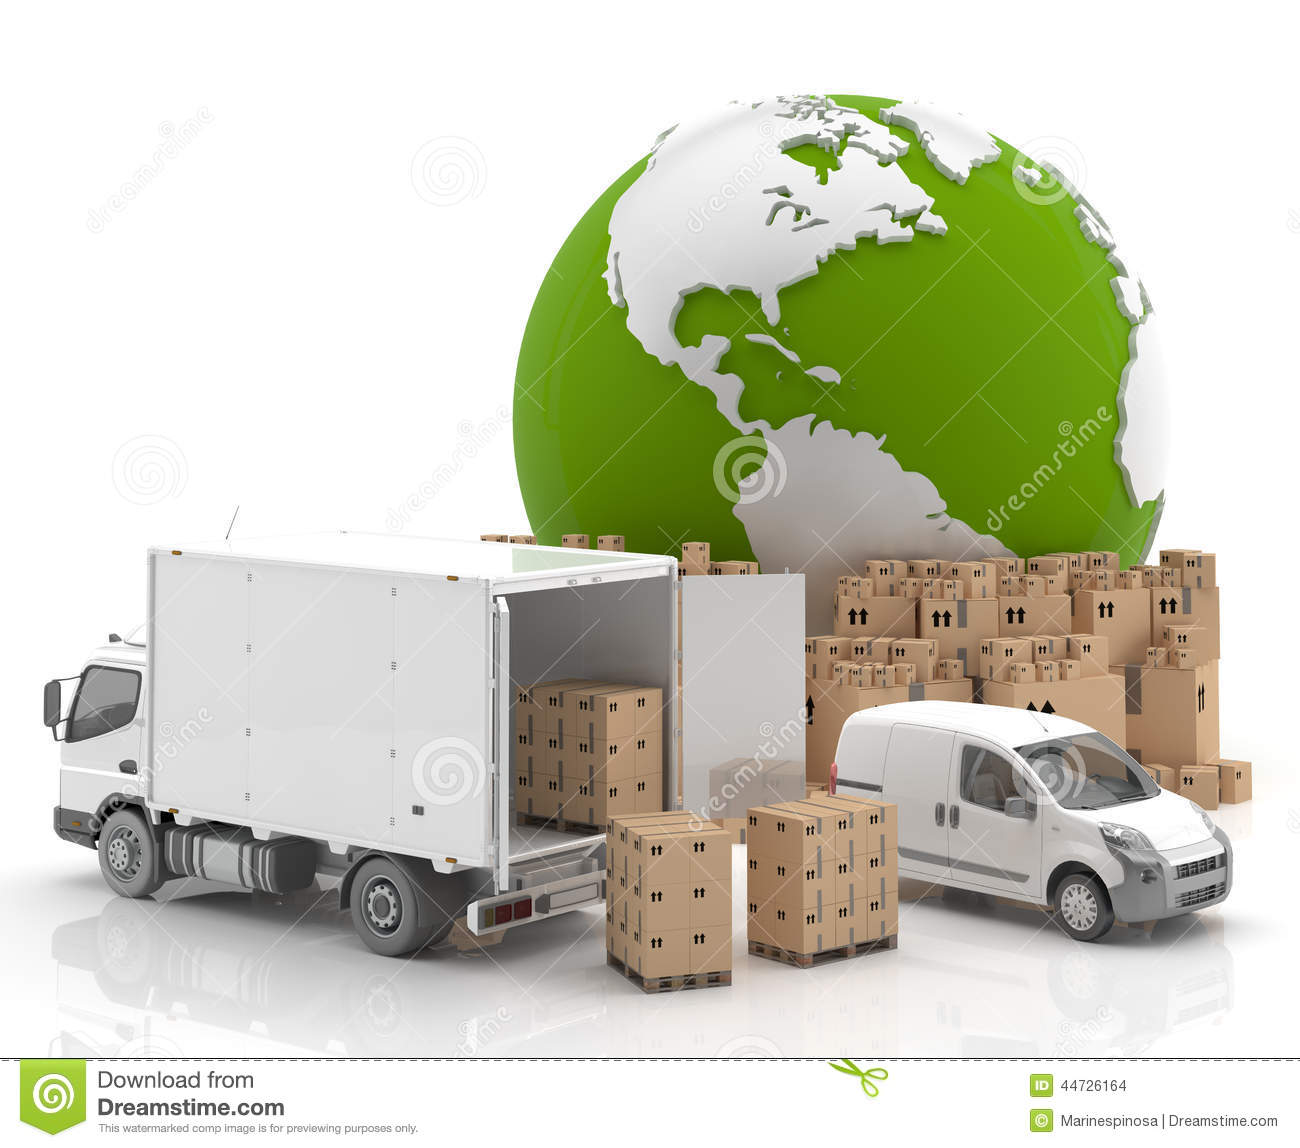 Transportation of goods clipart.